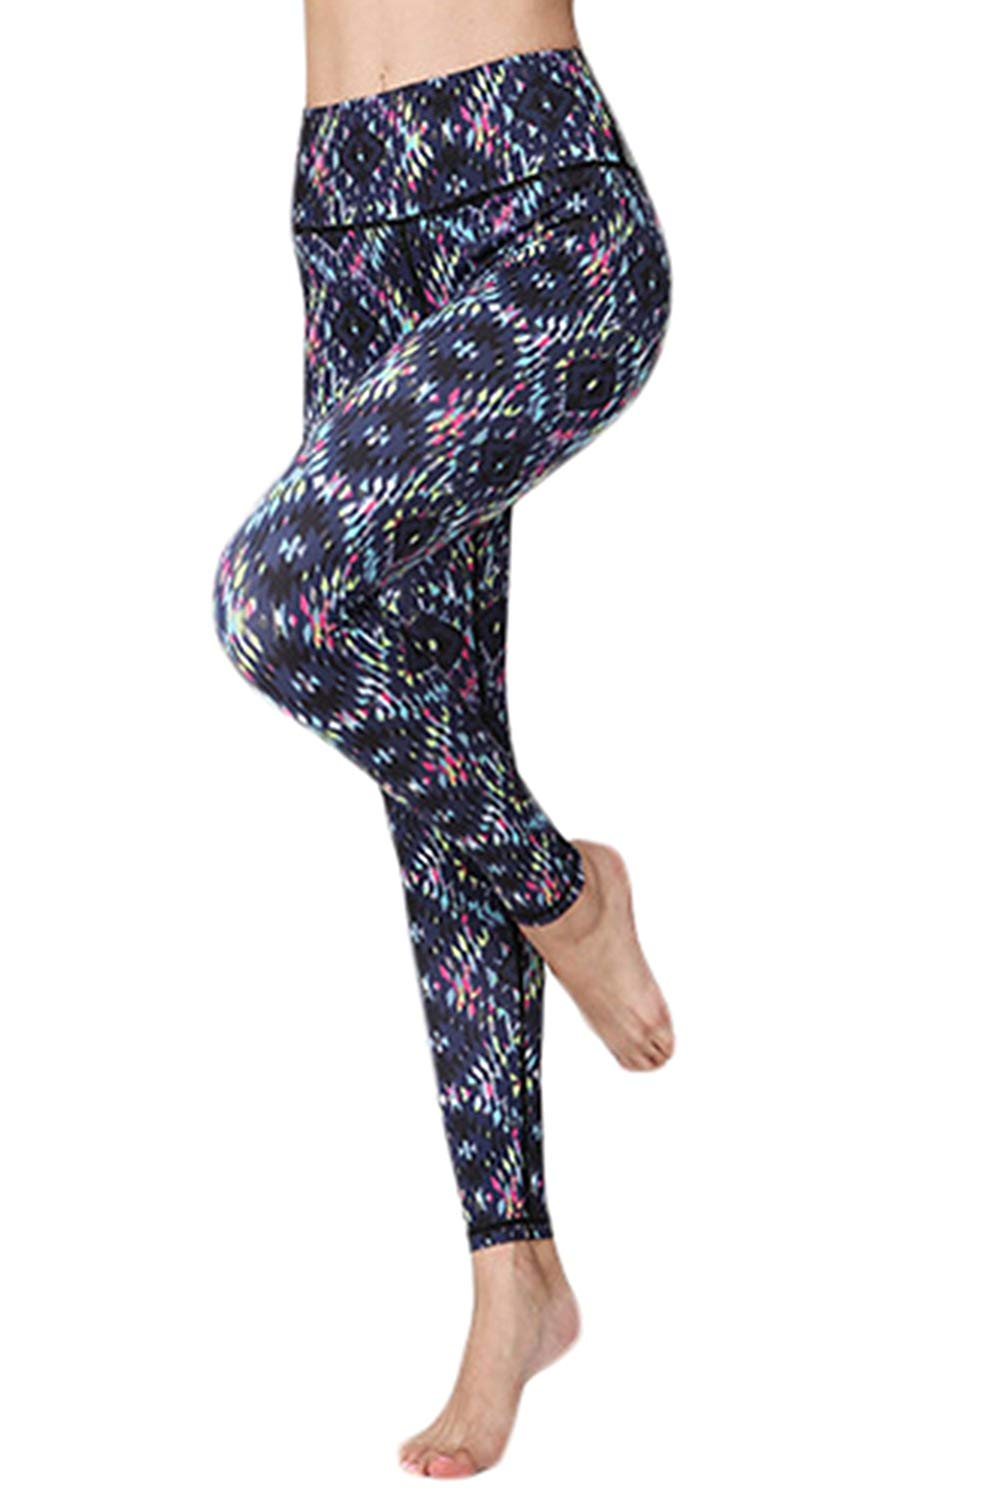 76a89cef32f6f Get Quotations · L'ASHER Women Running Tights, Sport Pant Yoga Pant High  Waist Tummy Control Compression